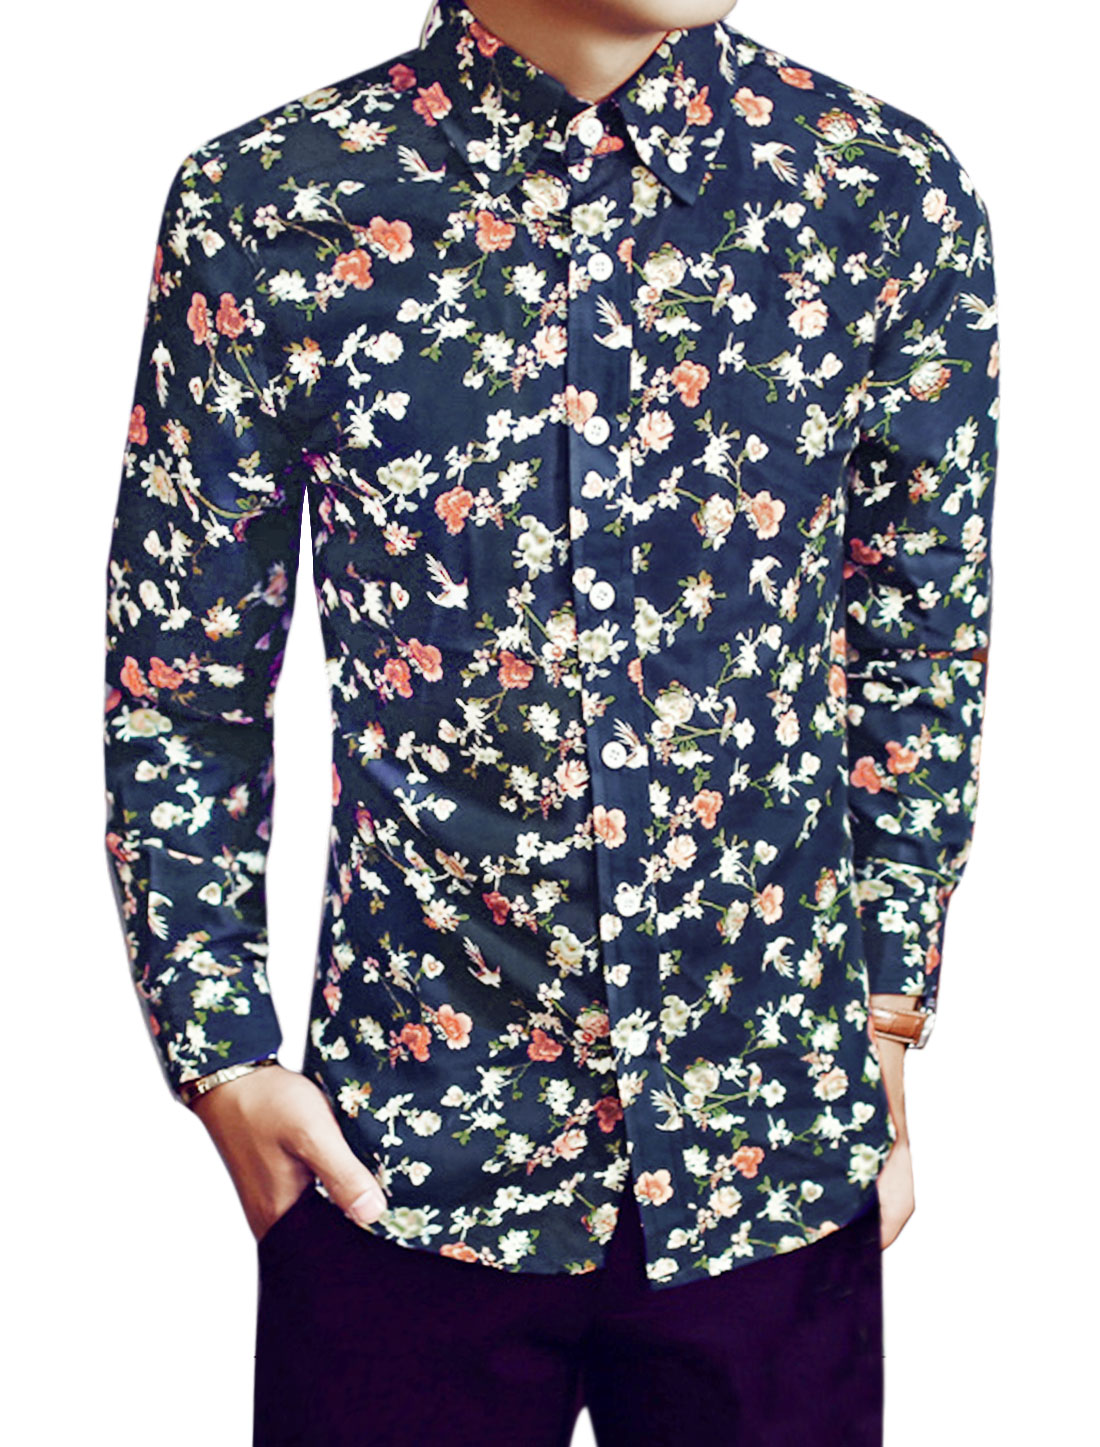 Men Point Collar Floral Print Single Breasted Long Sleeves Shirts Blue S